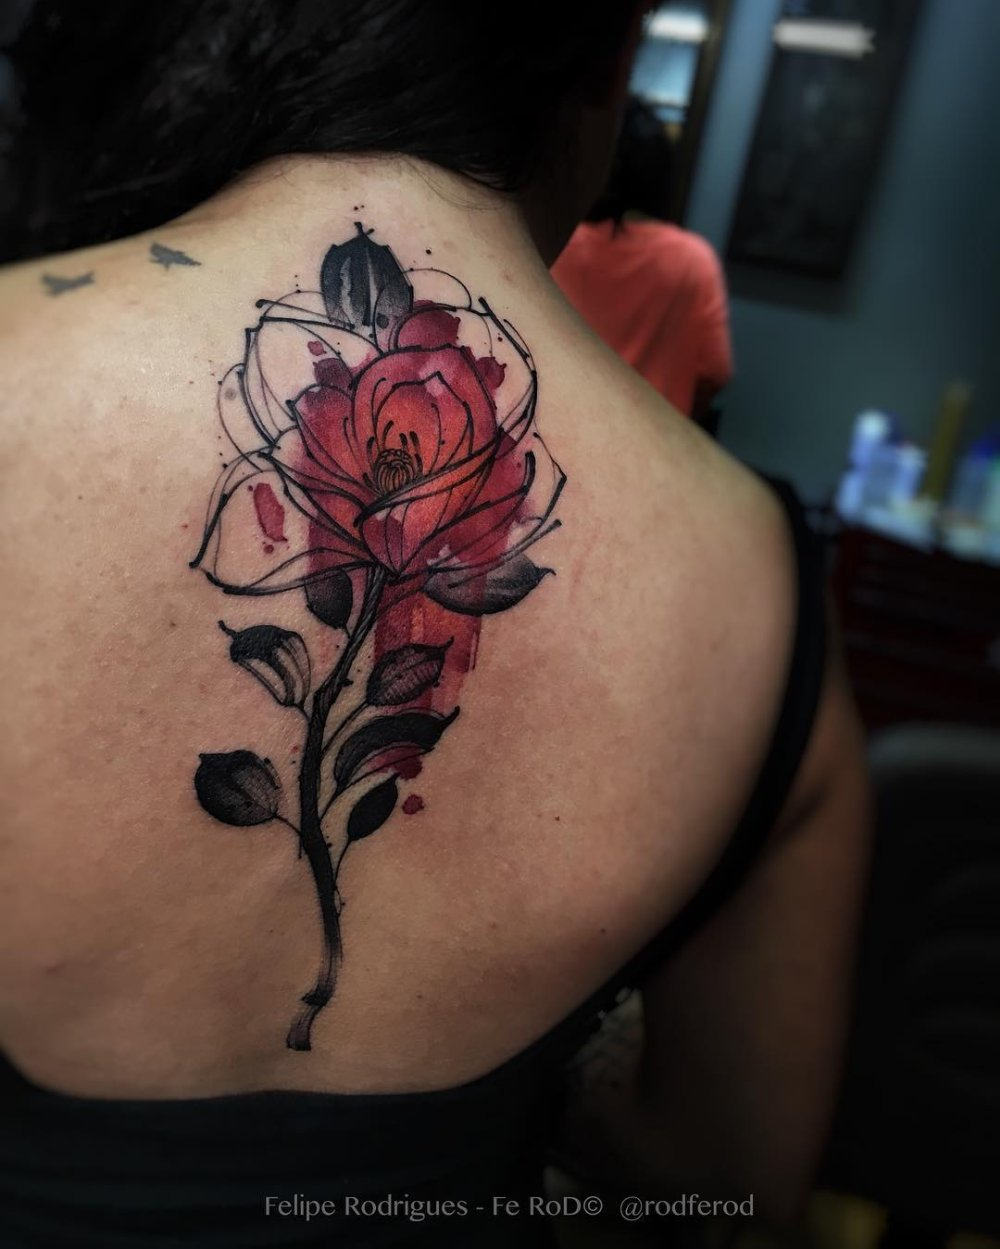 Felipe-Rodrigues-02-Tattoo-004